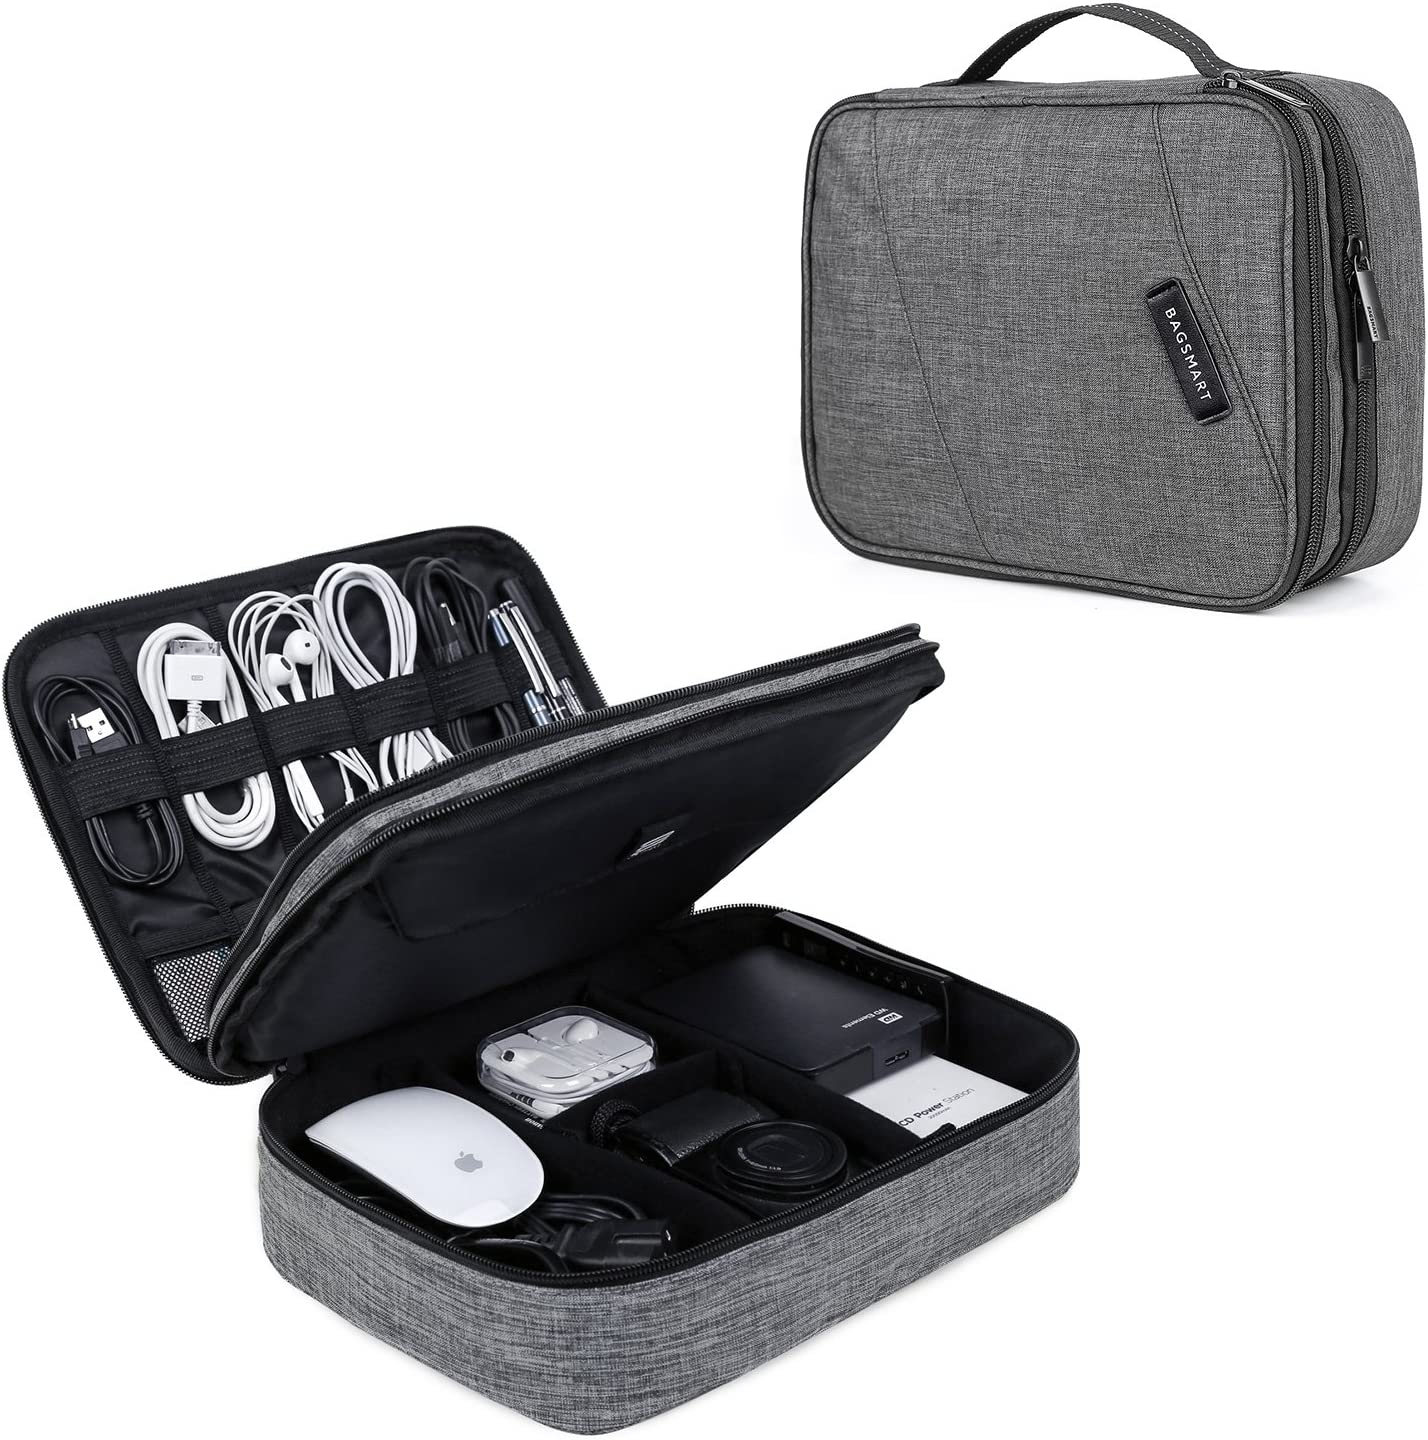 BAGSMART Electronic Organizer Double Layer Travel Cable Organizer Cases Electronics Accessories Storage Bag for 10.5 Inch iPad Pro, iPad air, Cables, Kindle, Grey